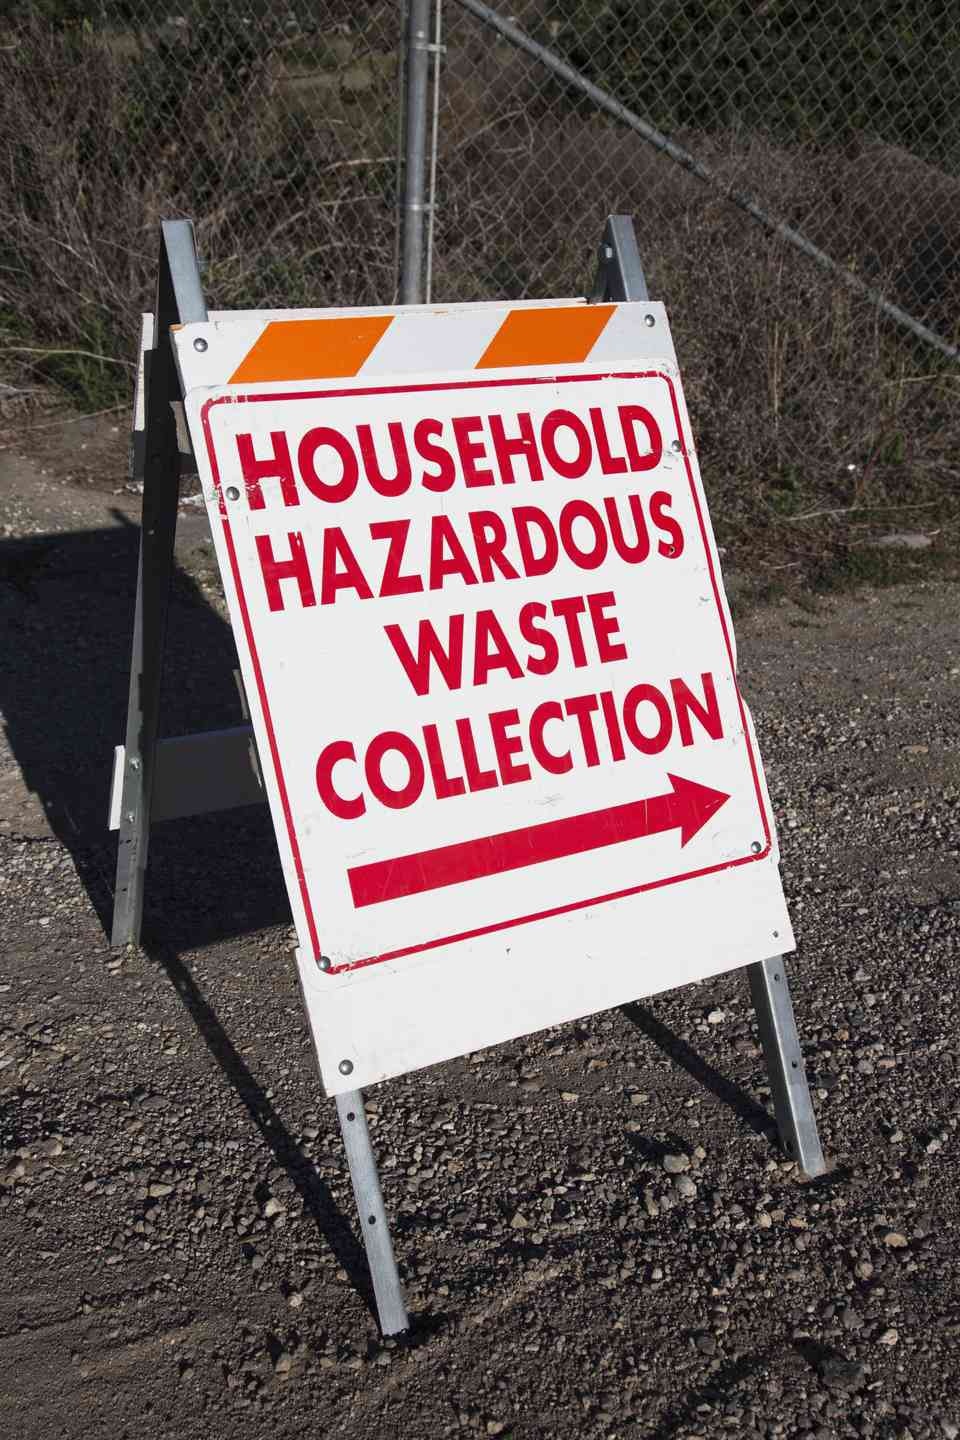 Hazardous Waste Collection